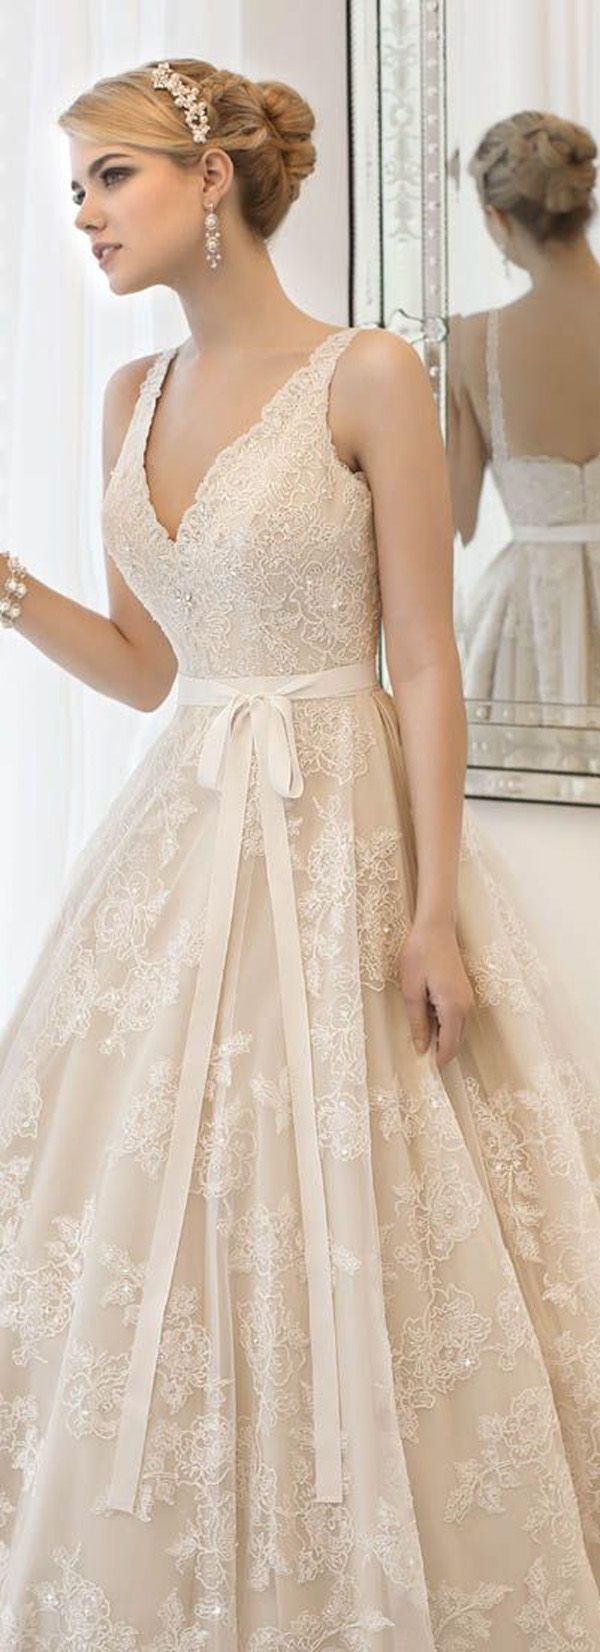 Retro wedding dress  Top  Vintage Wedding Dresses for  Brides  Vintage lace